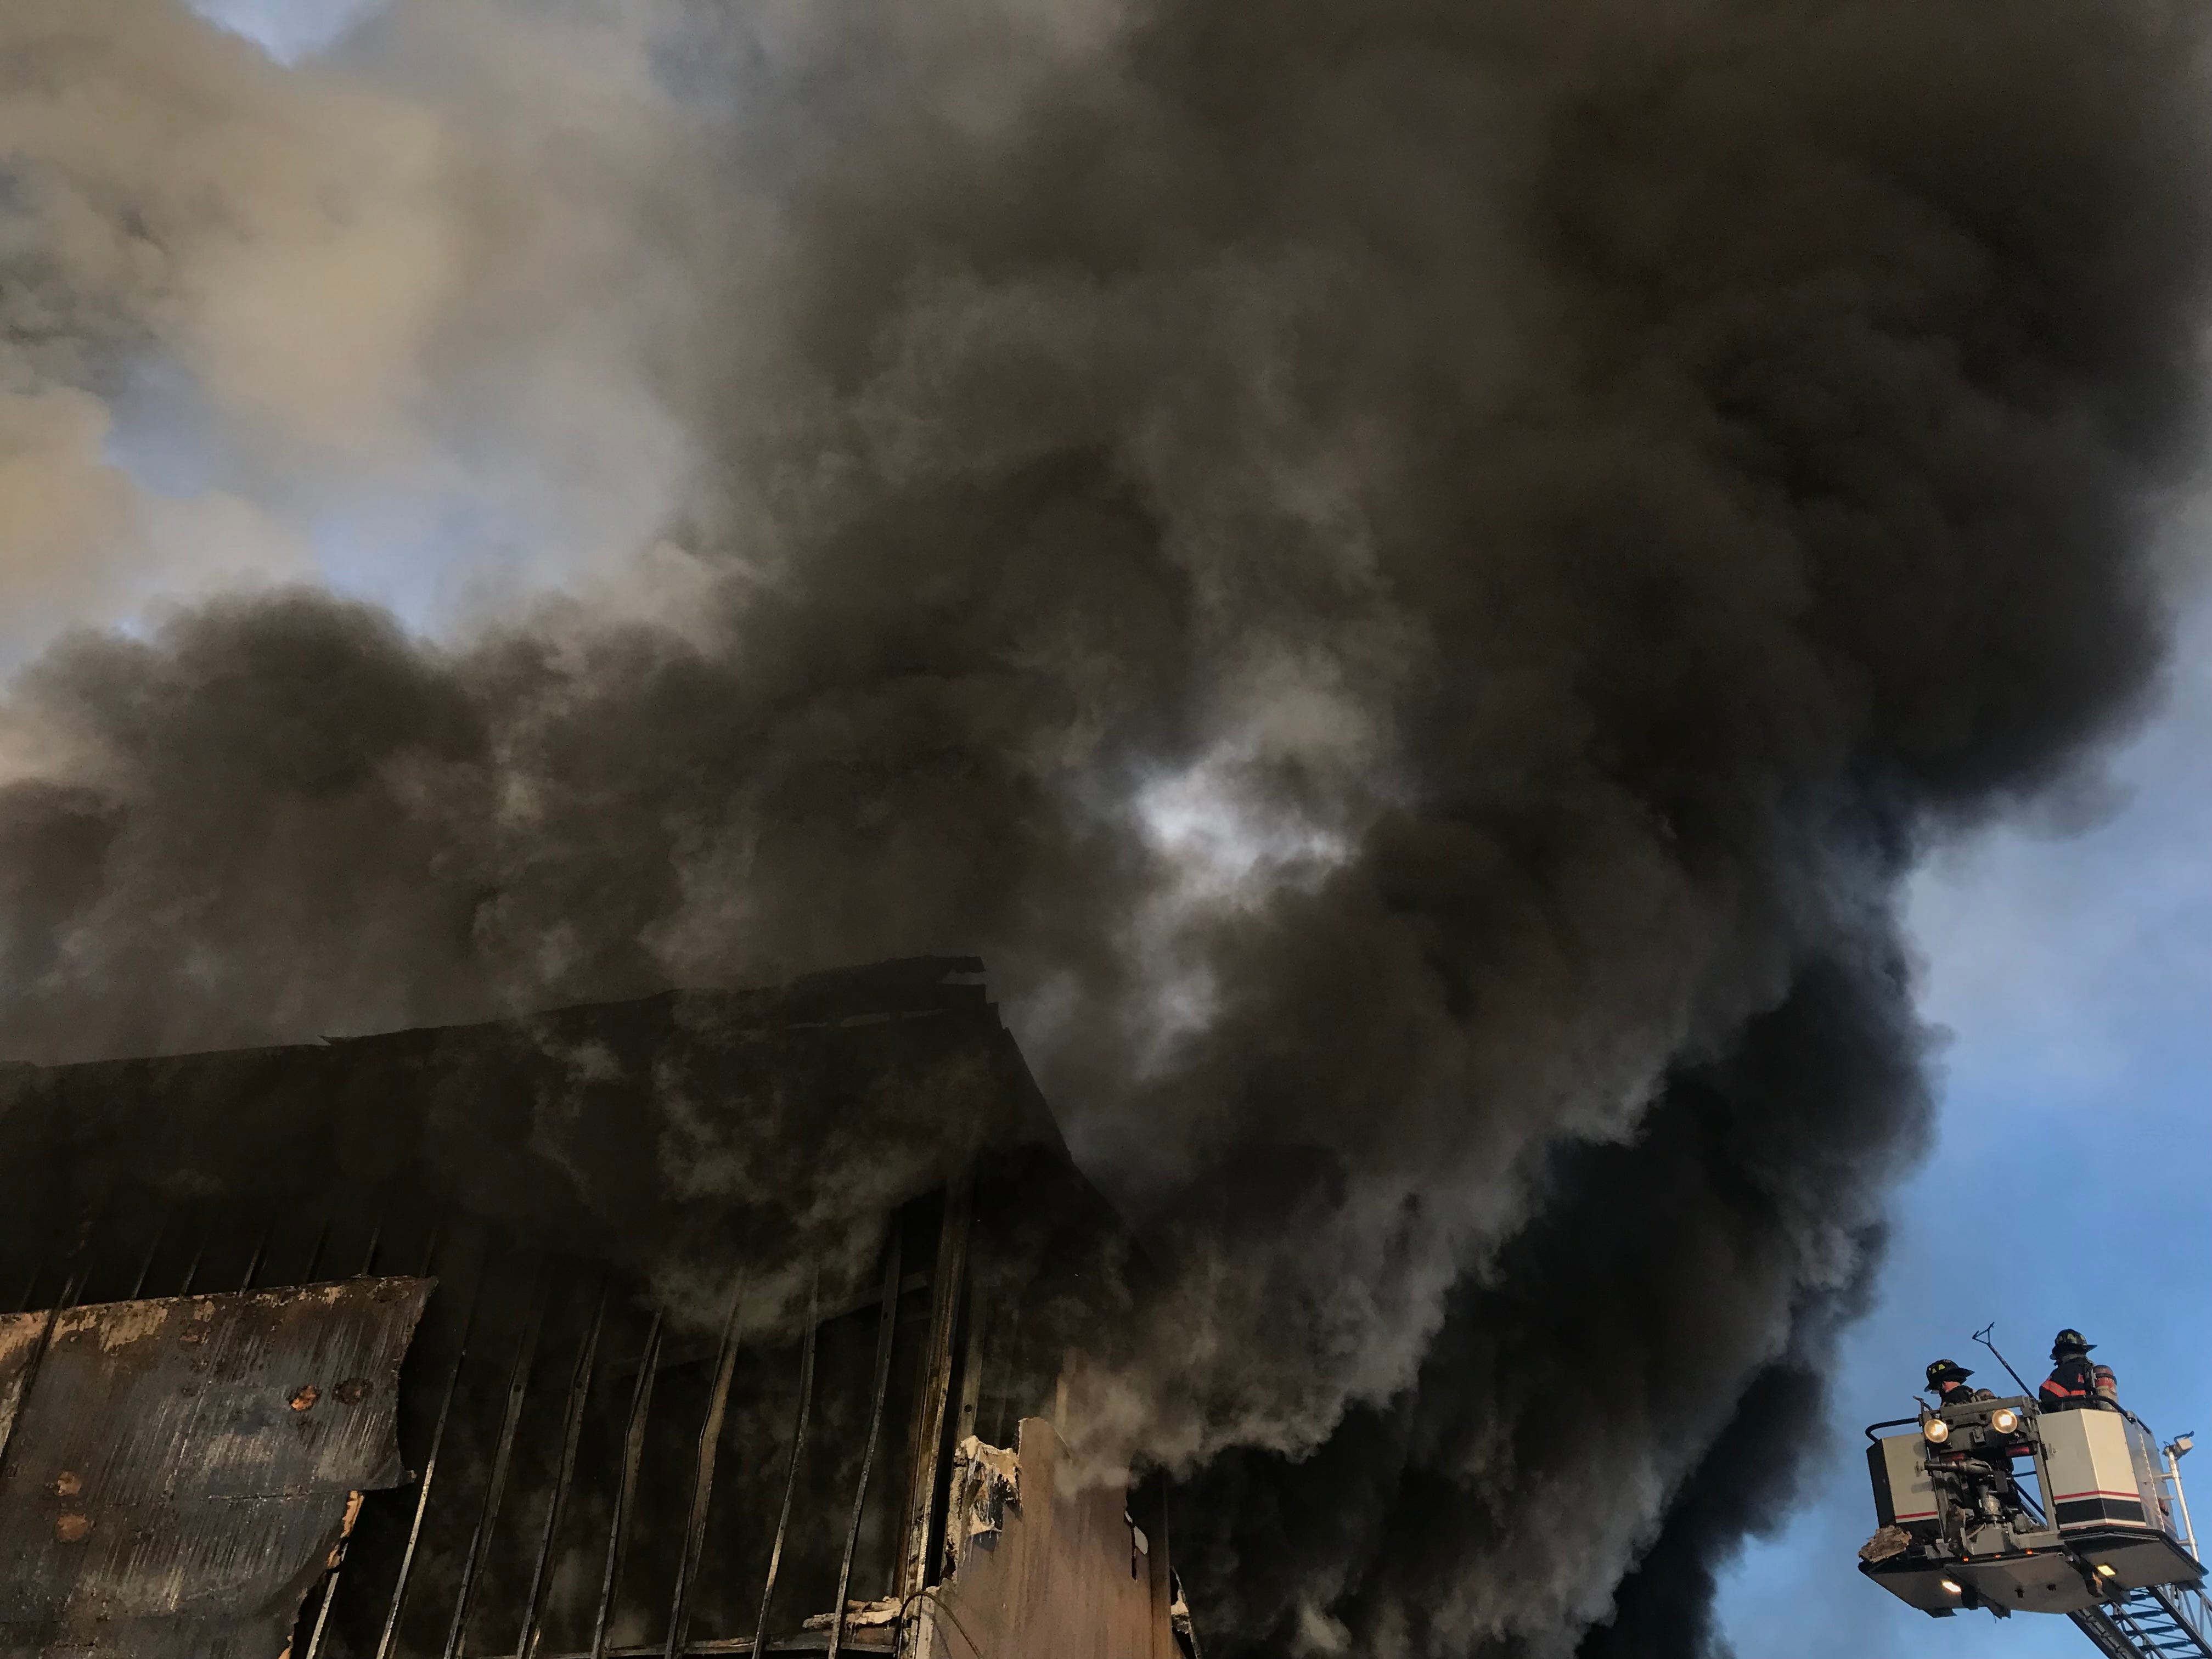 A fire damaged the Thomas Gleason excavation company in Poughkeepsie on Thursday.